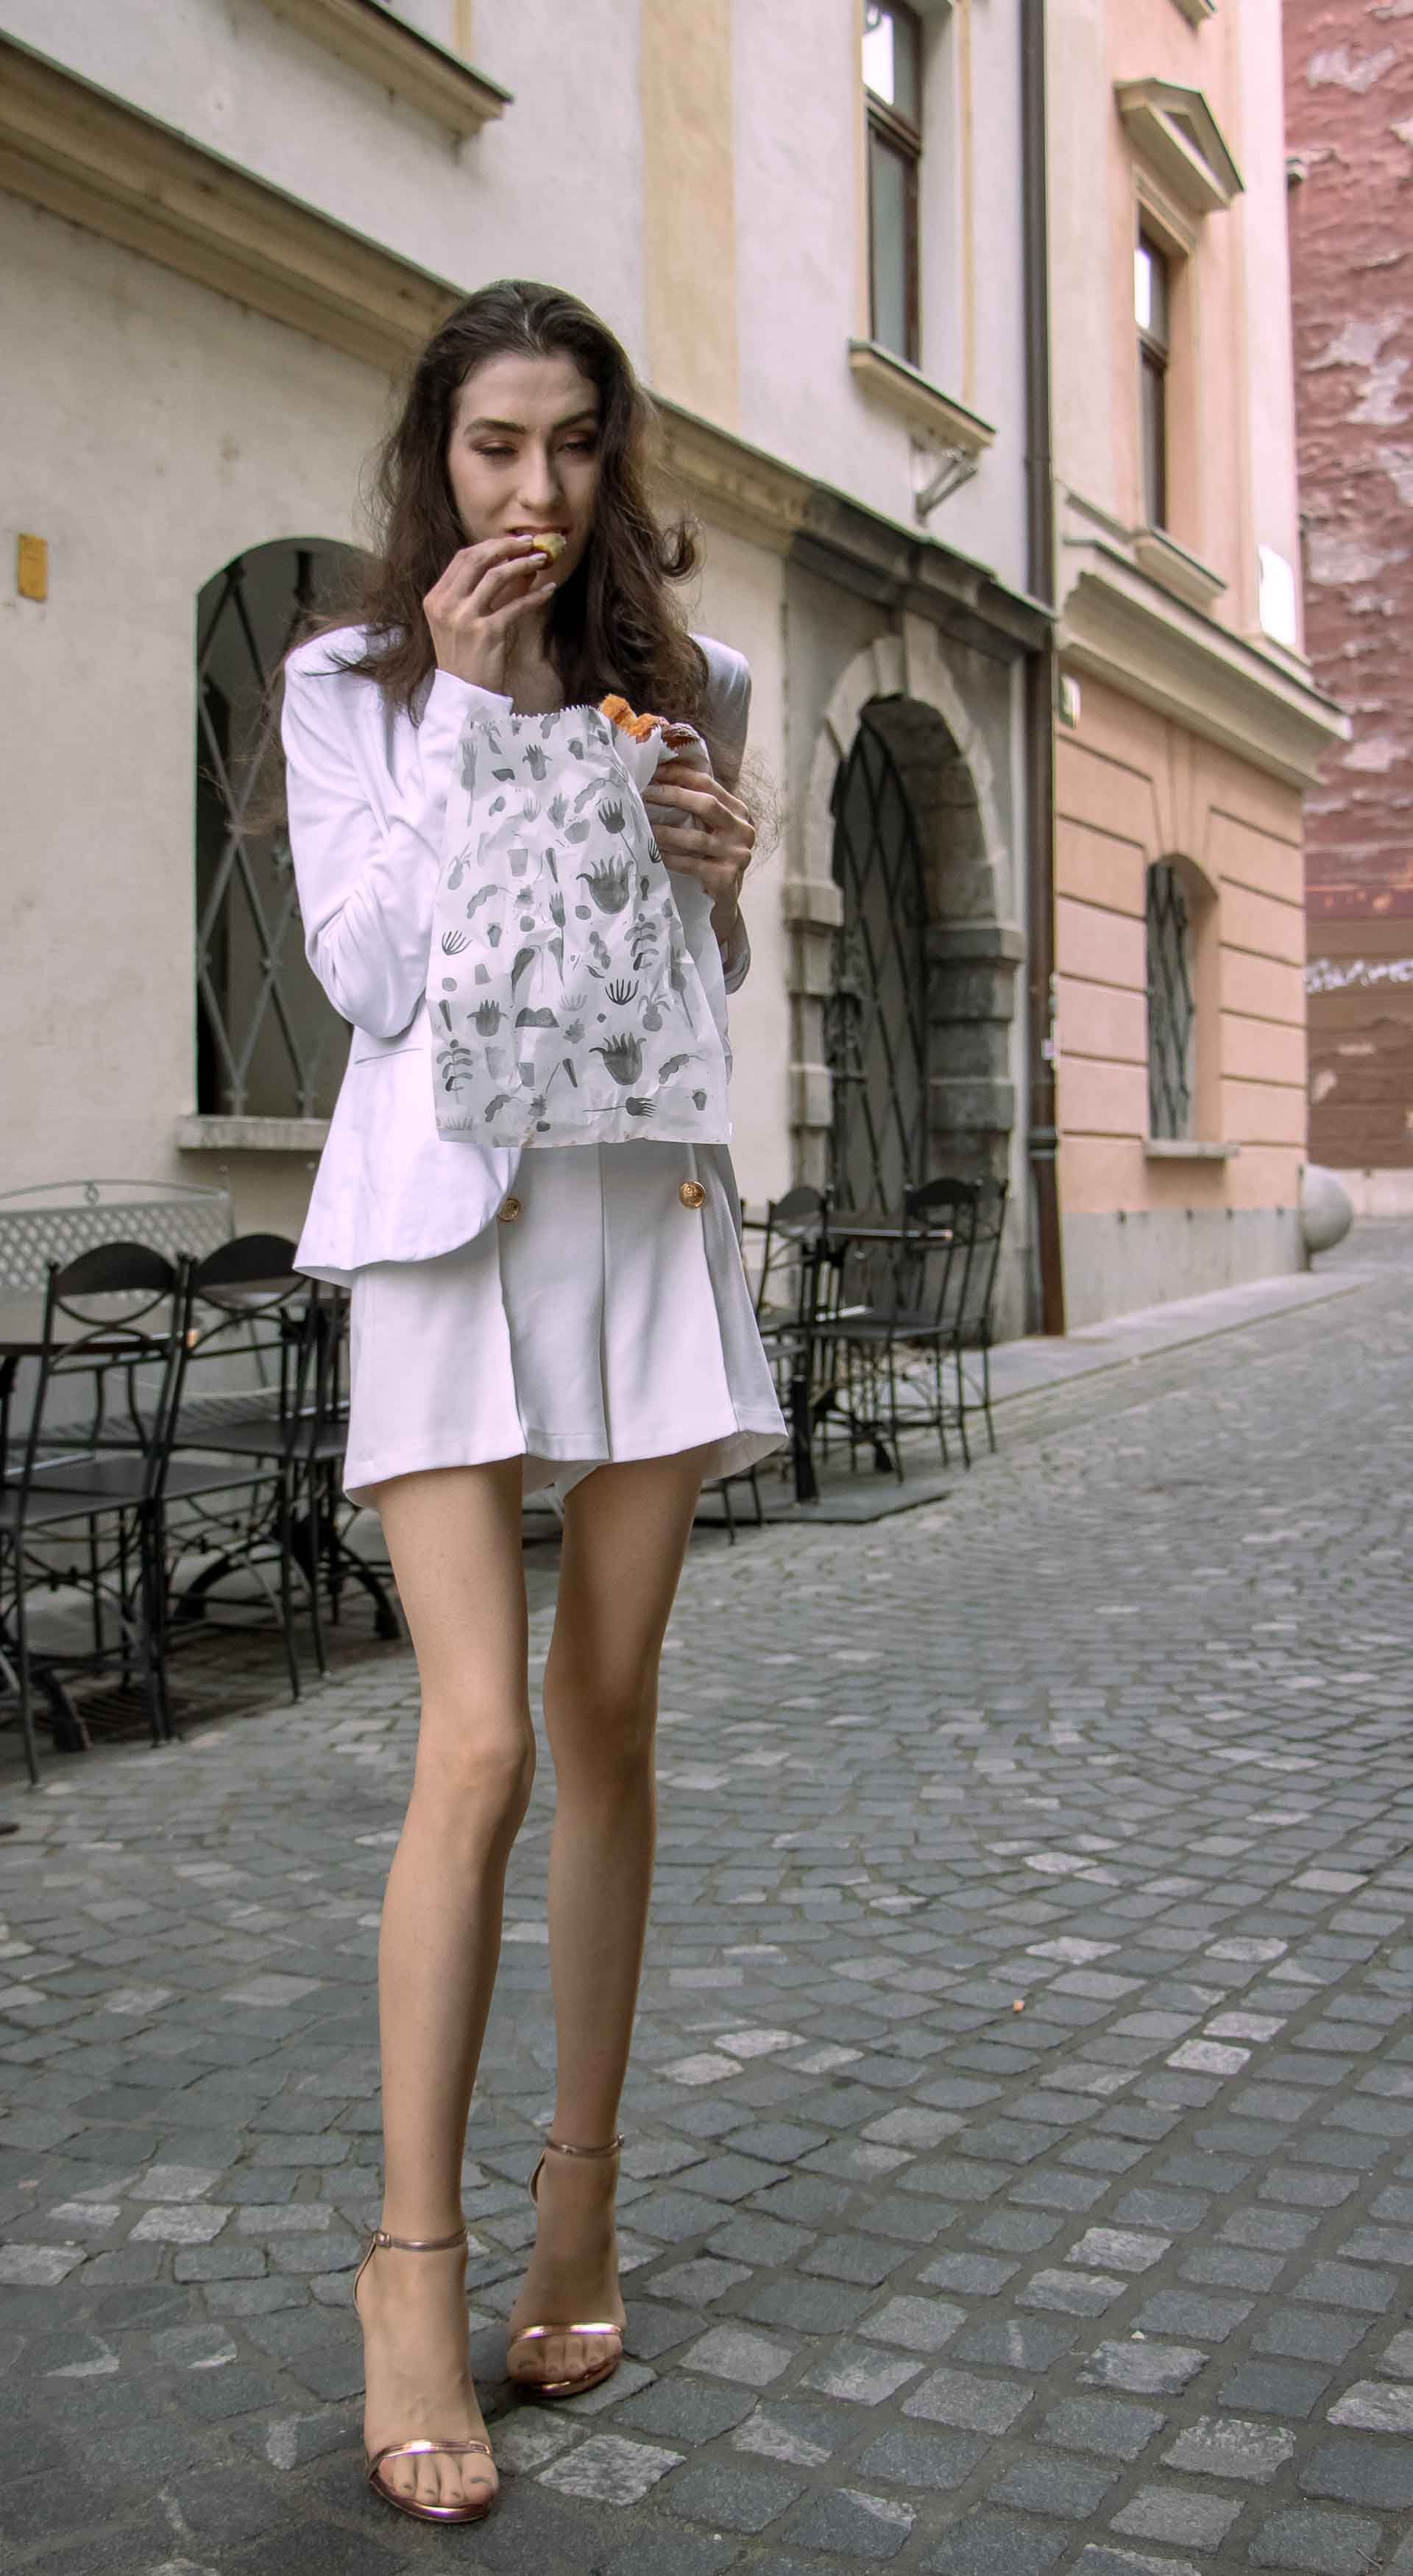 Beautiful Slovenian Fashion Blogger Veronika Lipar of Brunette from Wall dressed in all in white suit, white blazer, white tailored shorts, Stuart Weitzman high shine metallic nudist song sandals, shoulder bag while eating a croissant on the street in the morning after party